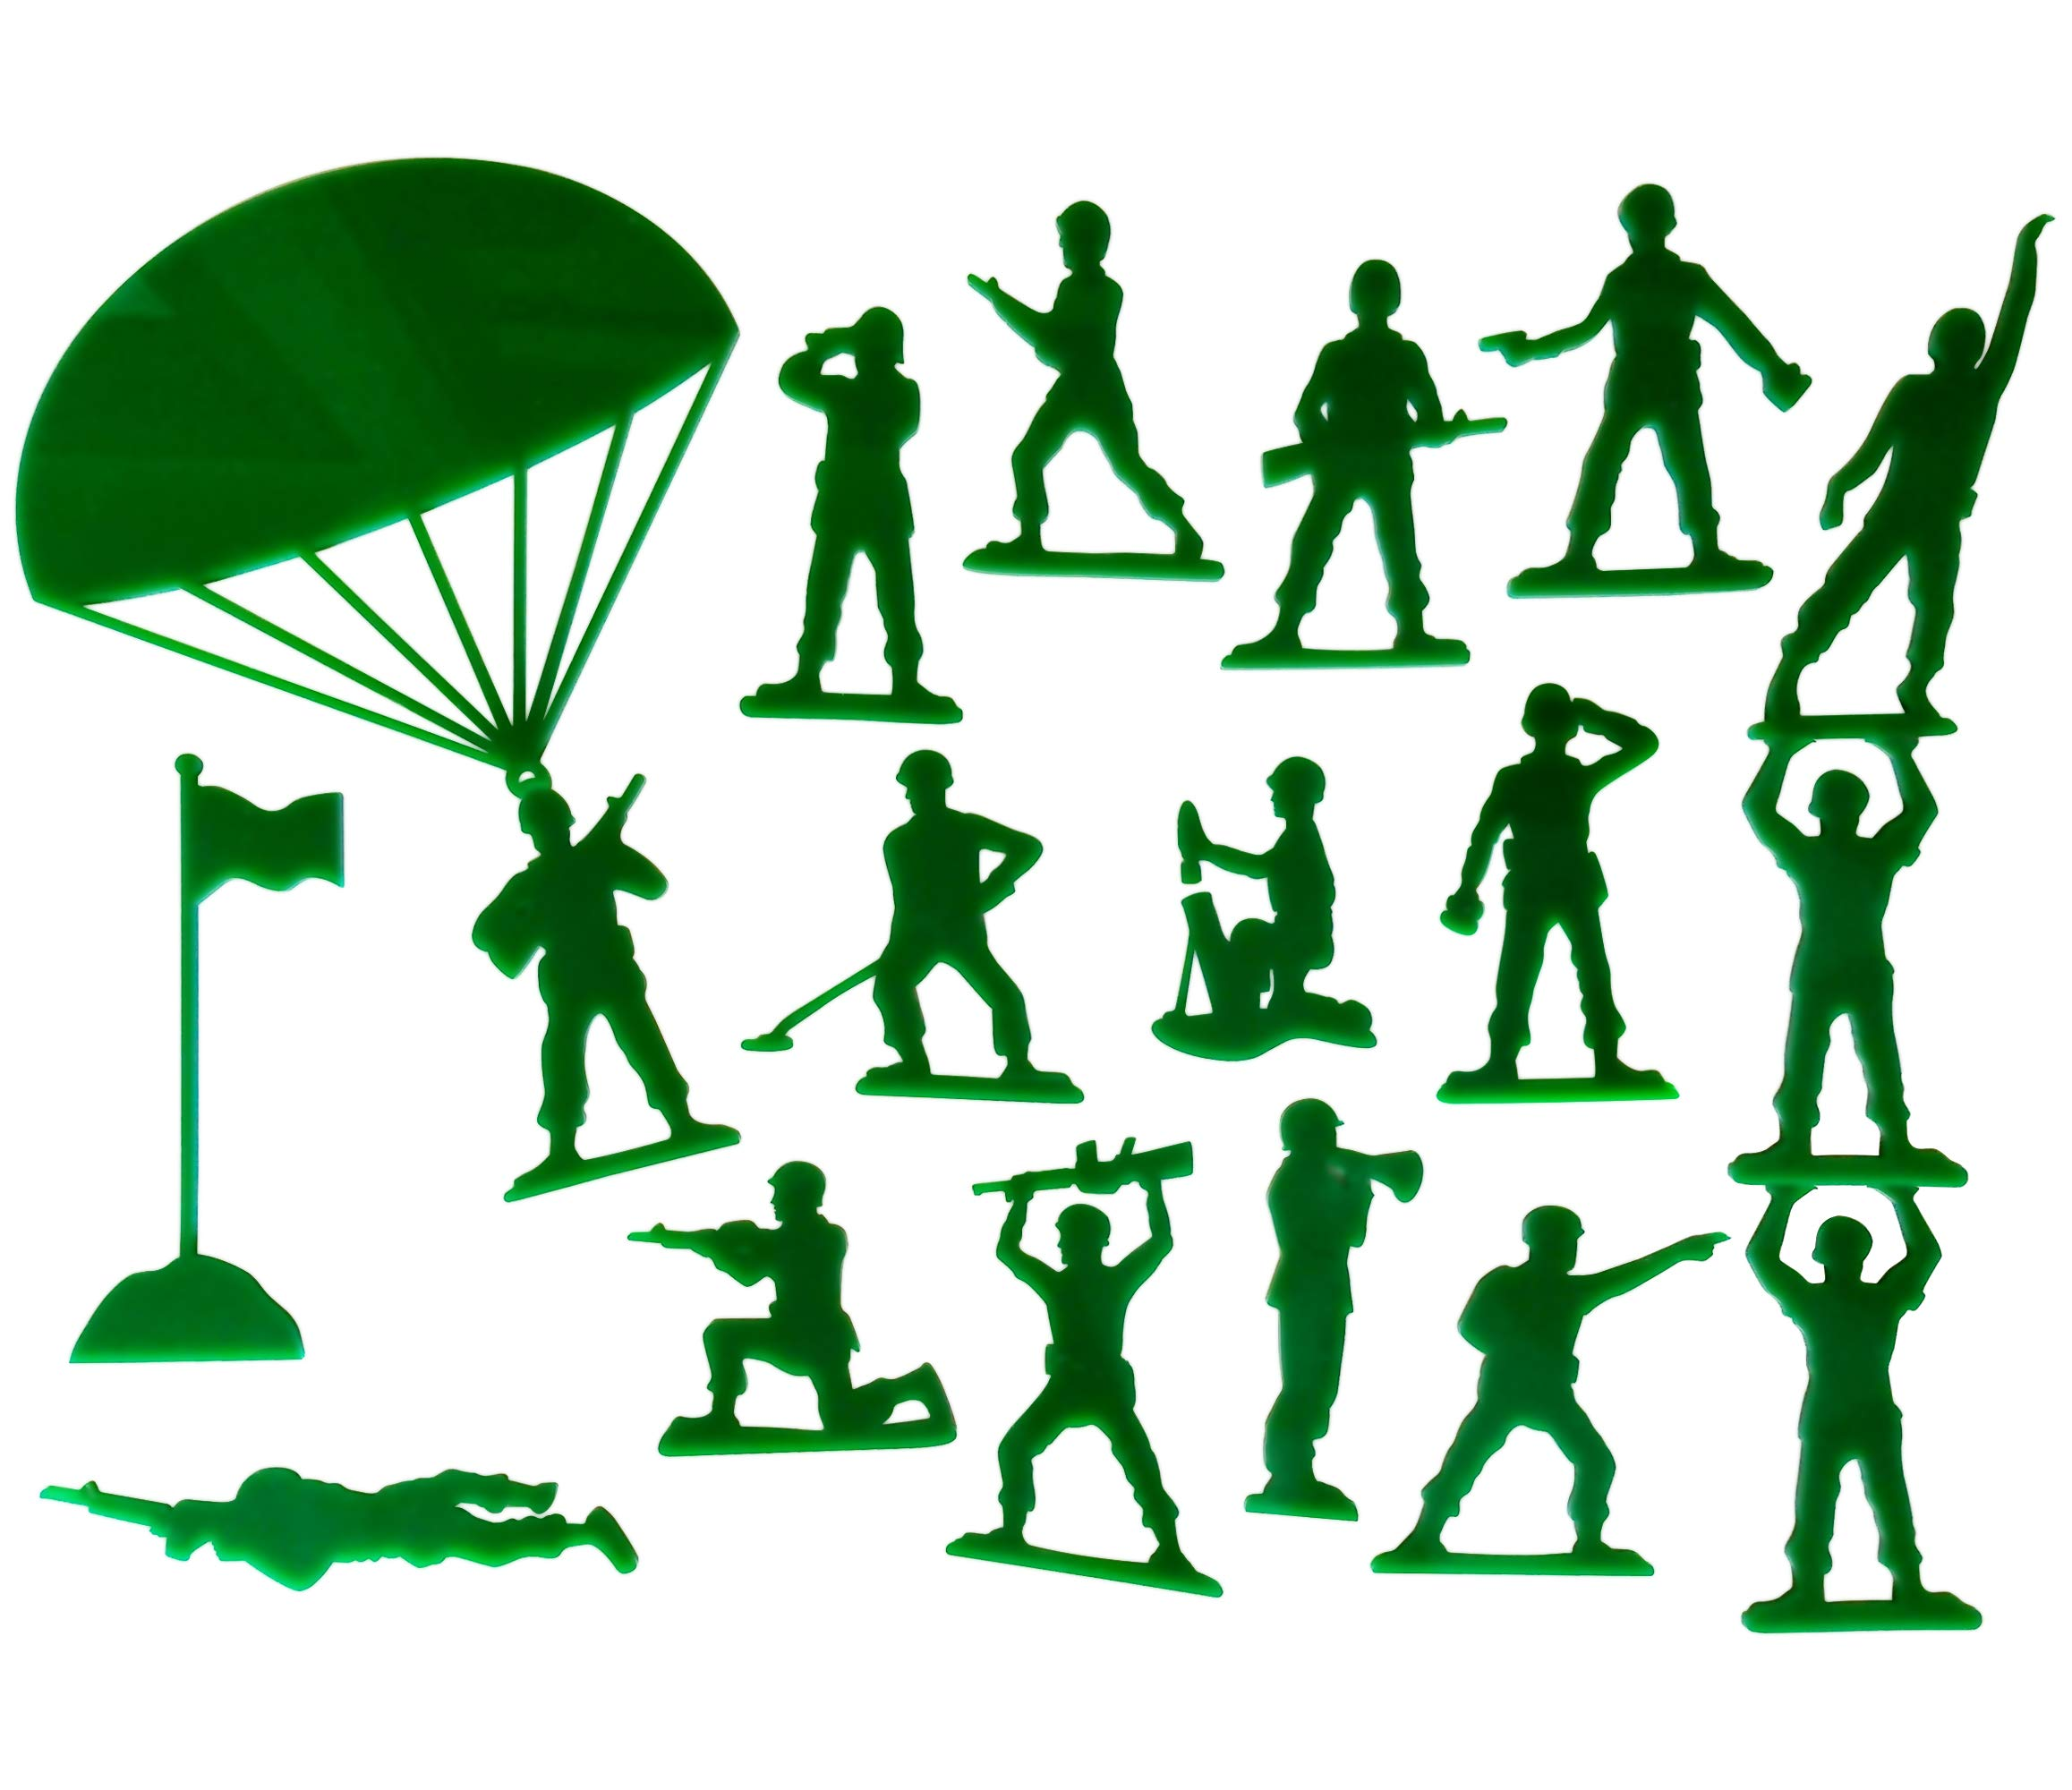 Set of 18 Army Men Acrylic Green Wall Decorations for a Kid's Toy Story Room or Andy's Room Nursery by Living Lullaby Designs